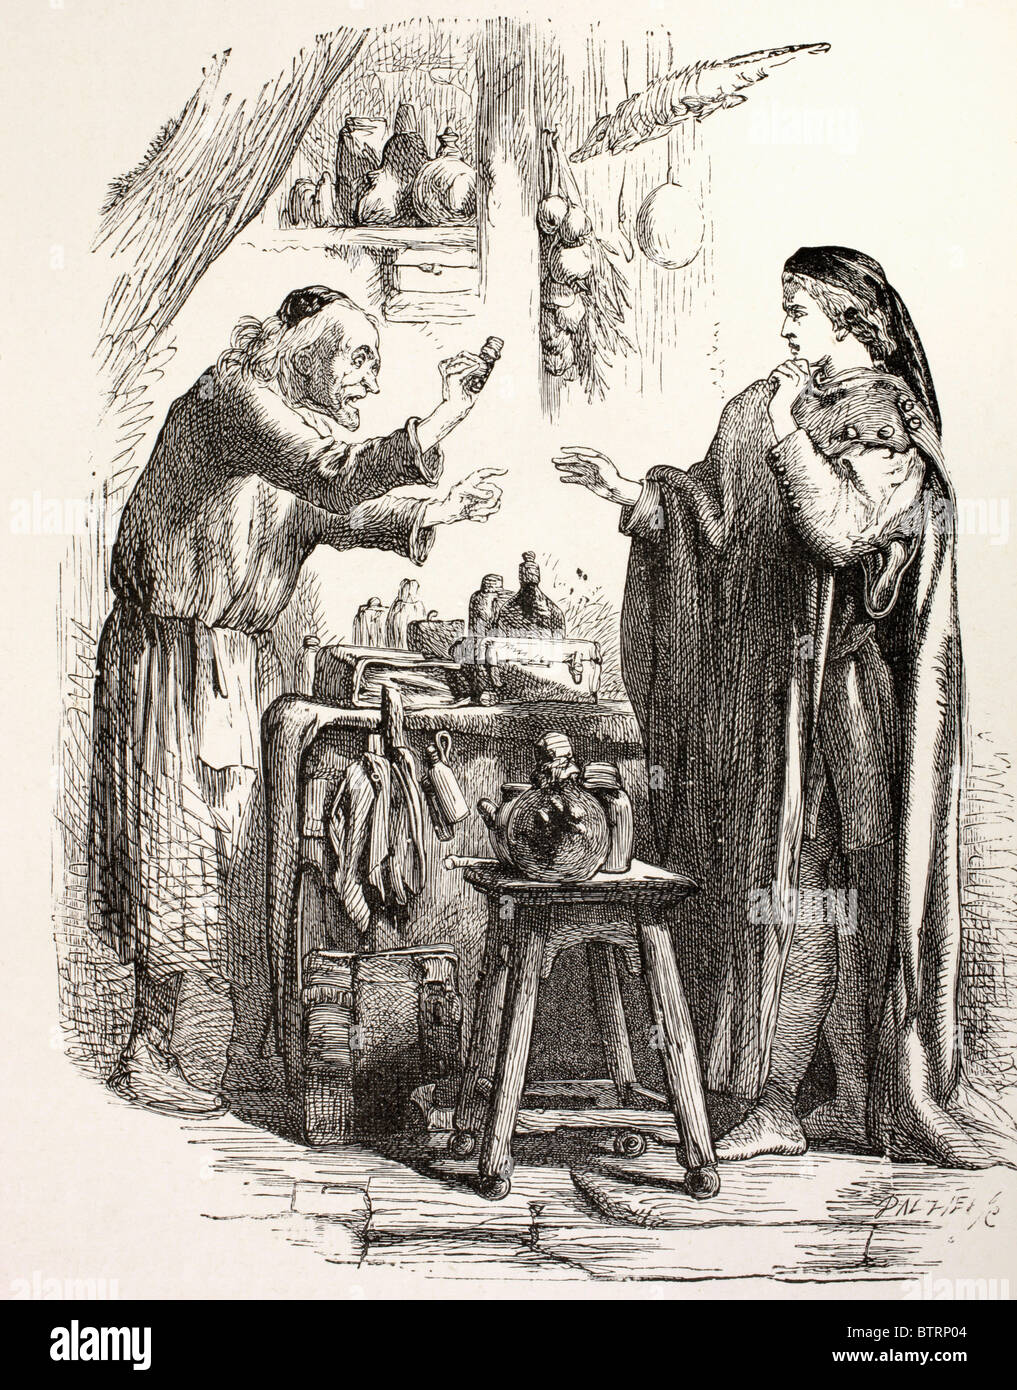 From Romeo and Juliet by William Shakespeare. Romeo buys poison from the apothecary. Stock Photo